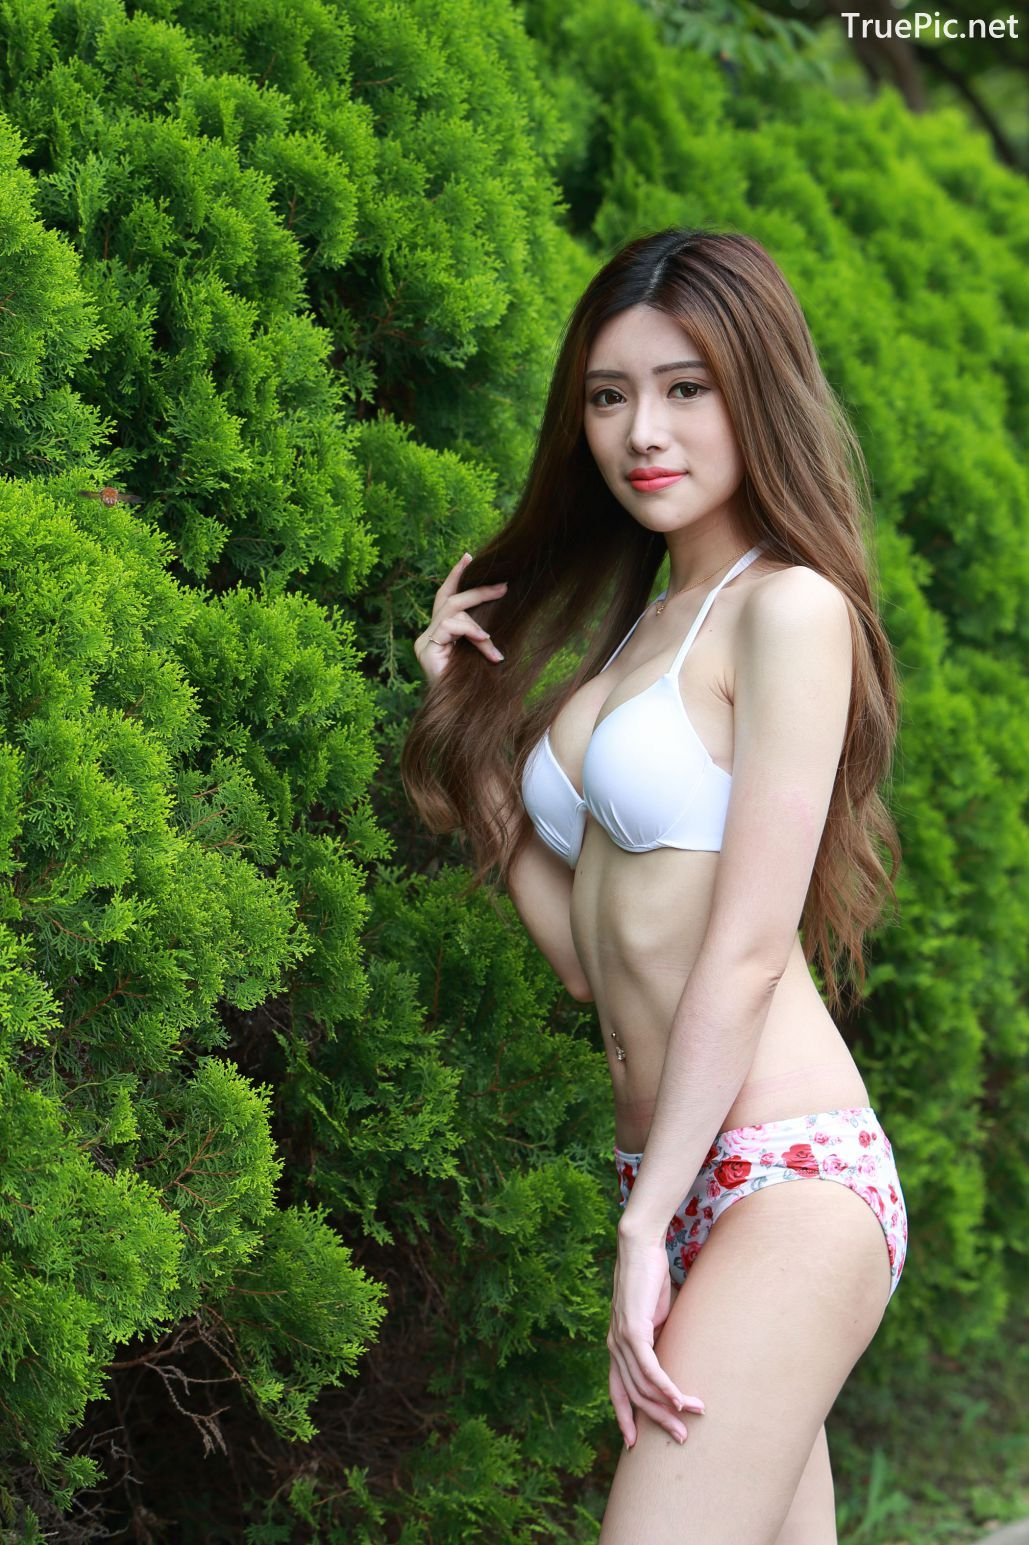 Image-Taiwanese-Model-承容-Lovely-And-Beautiful-Bikini-Baby-TruePic.net- Picture-1